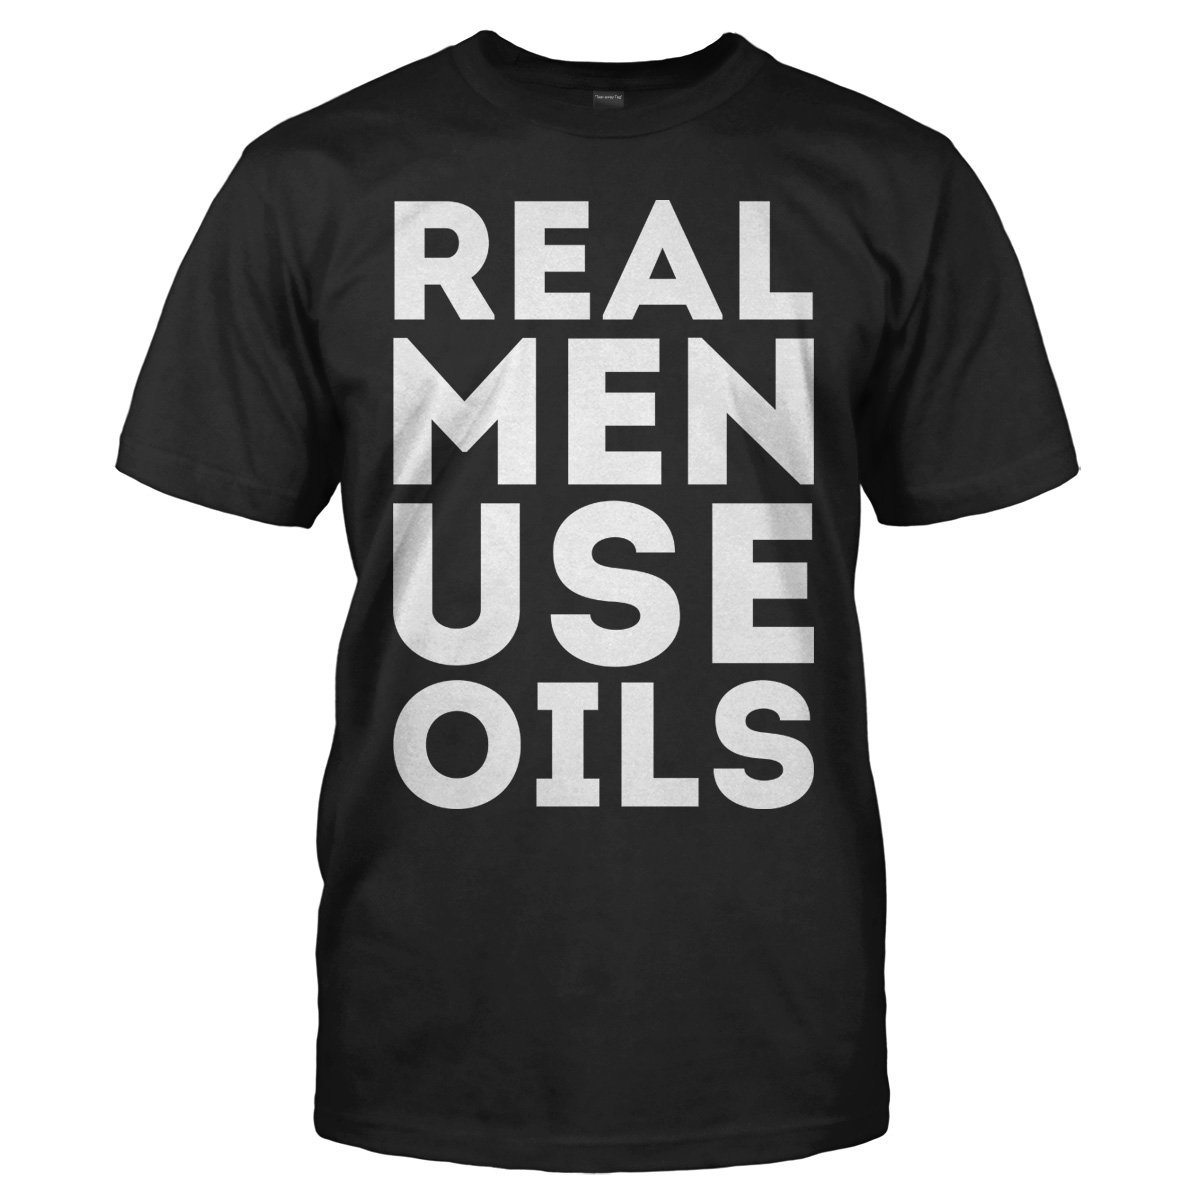 Real Men Use Oils - T Shirt